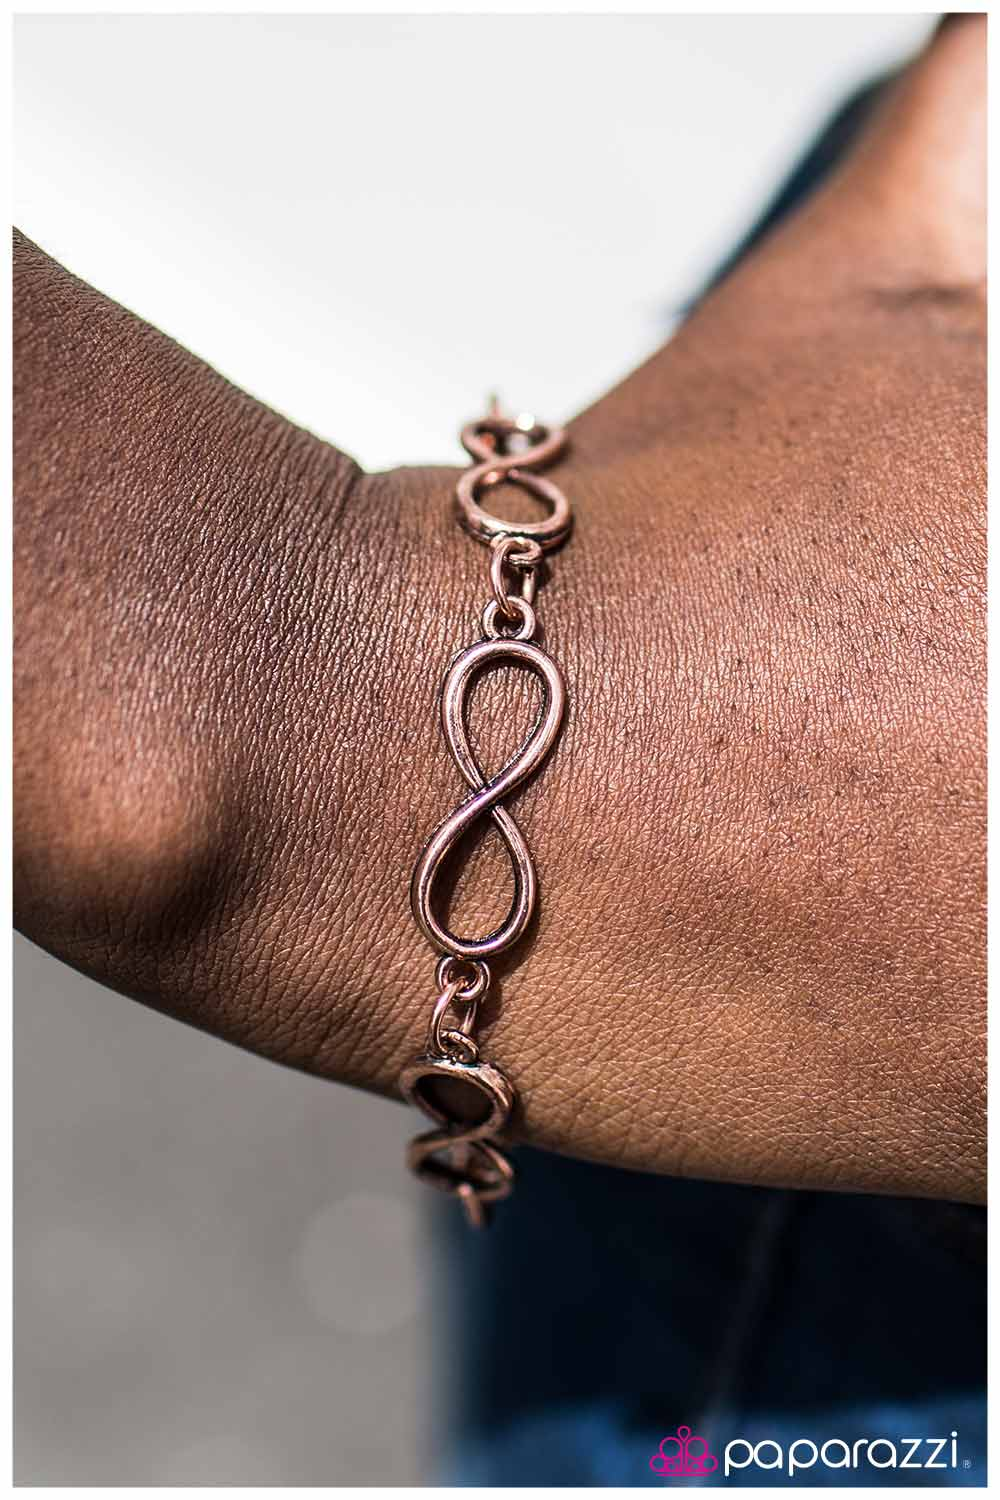 Forever Yours - copper - Paparazzi bracelet